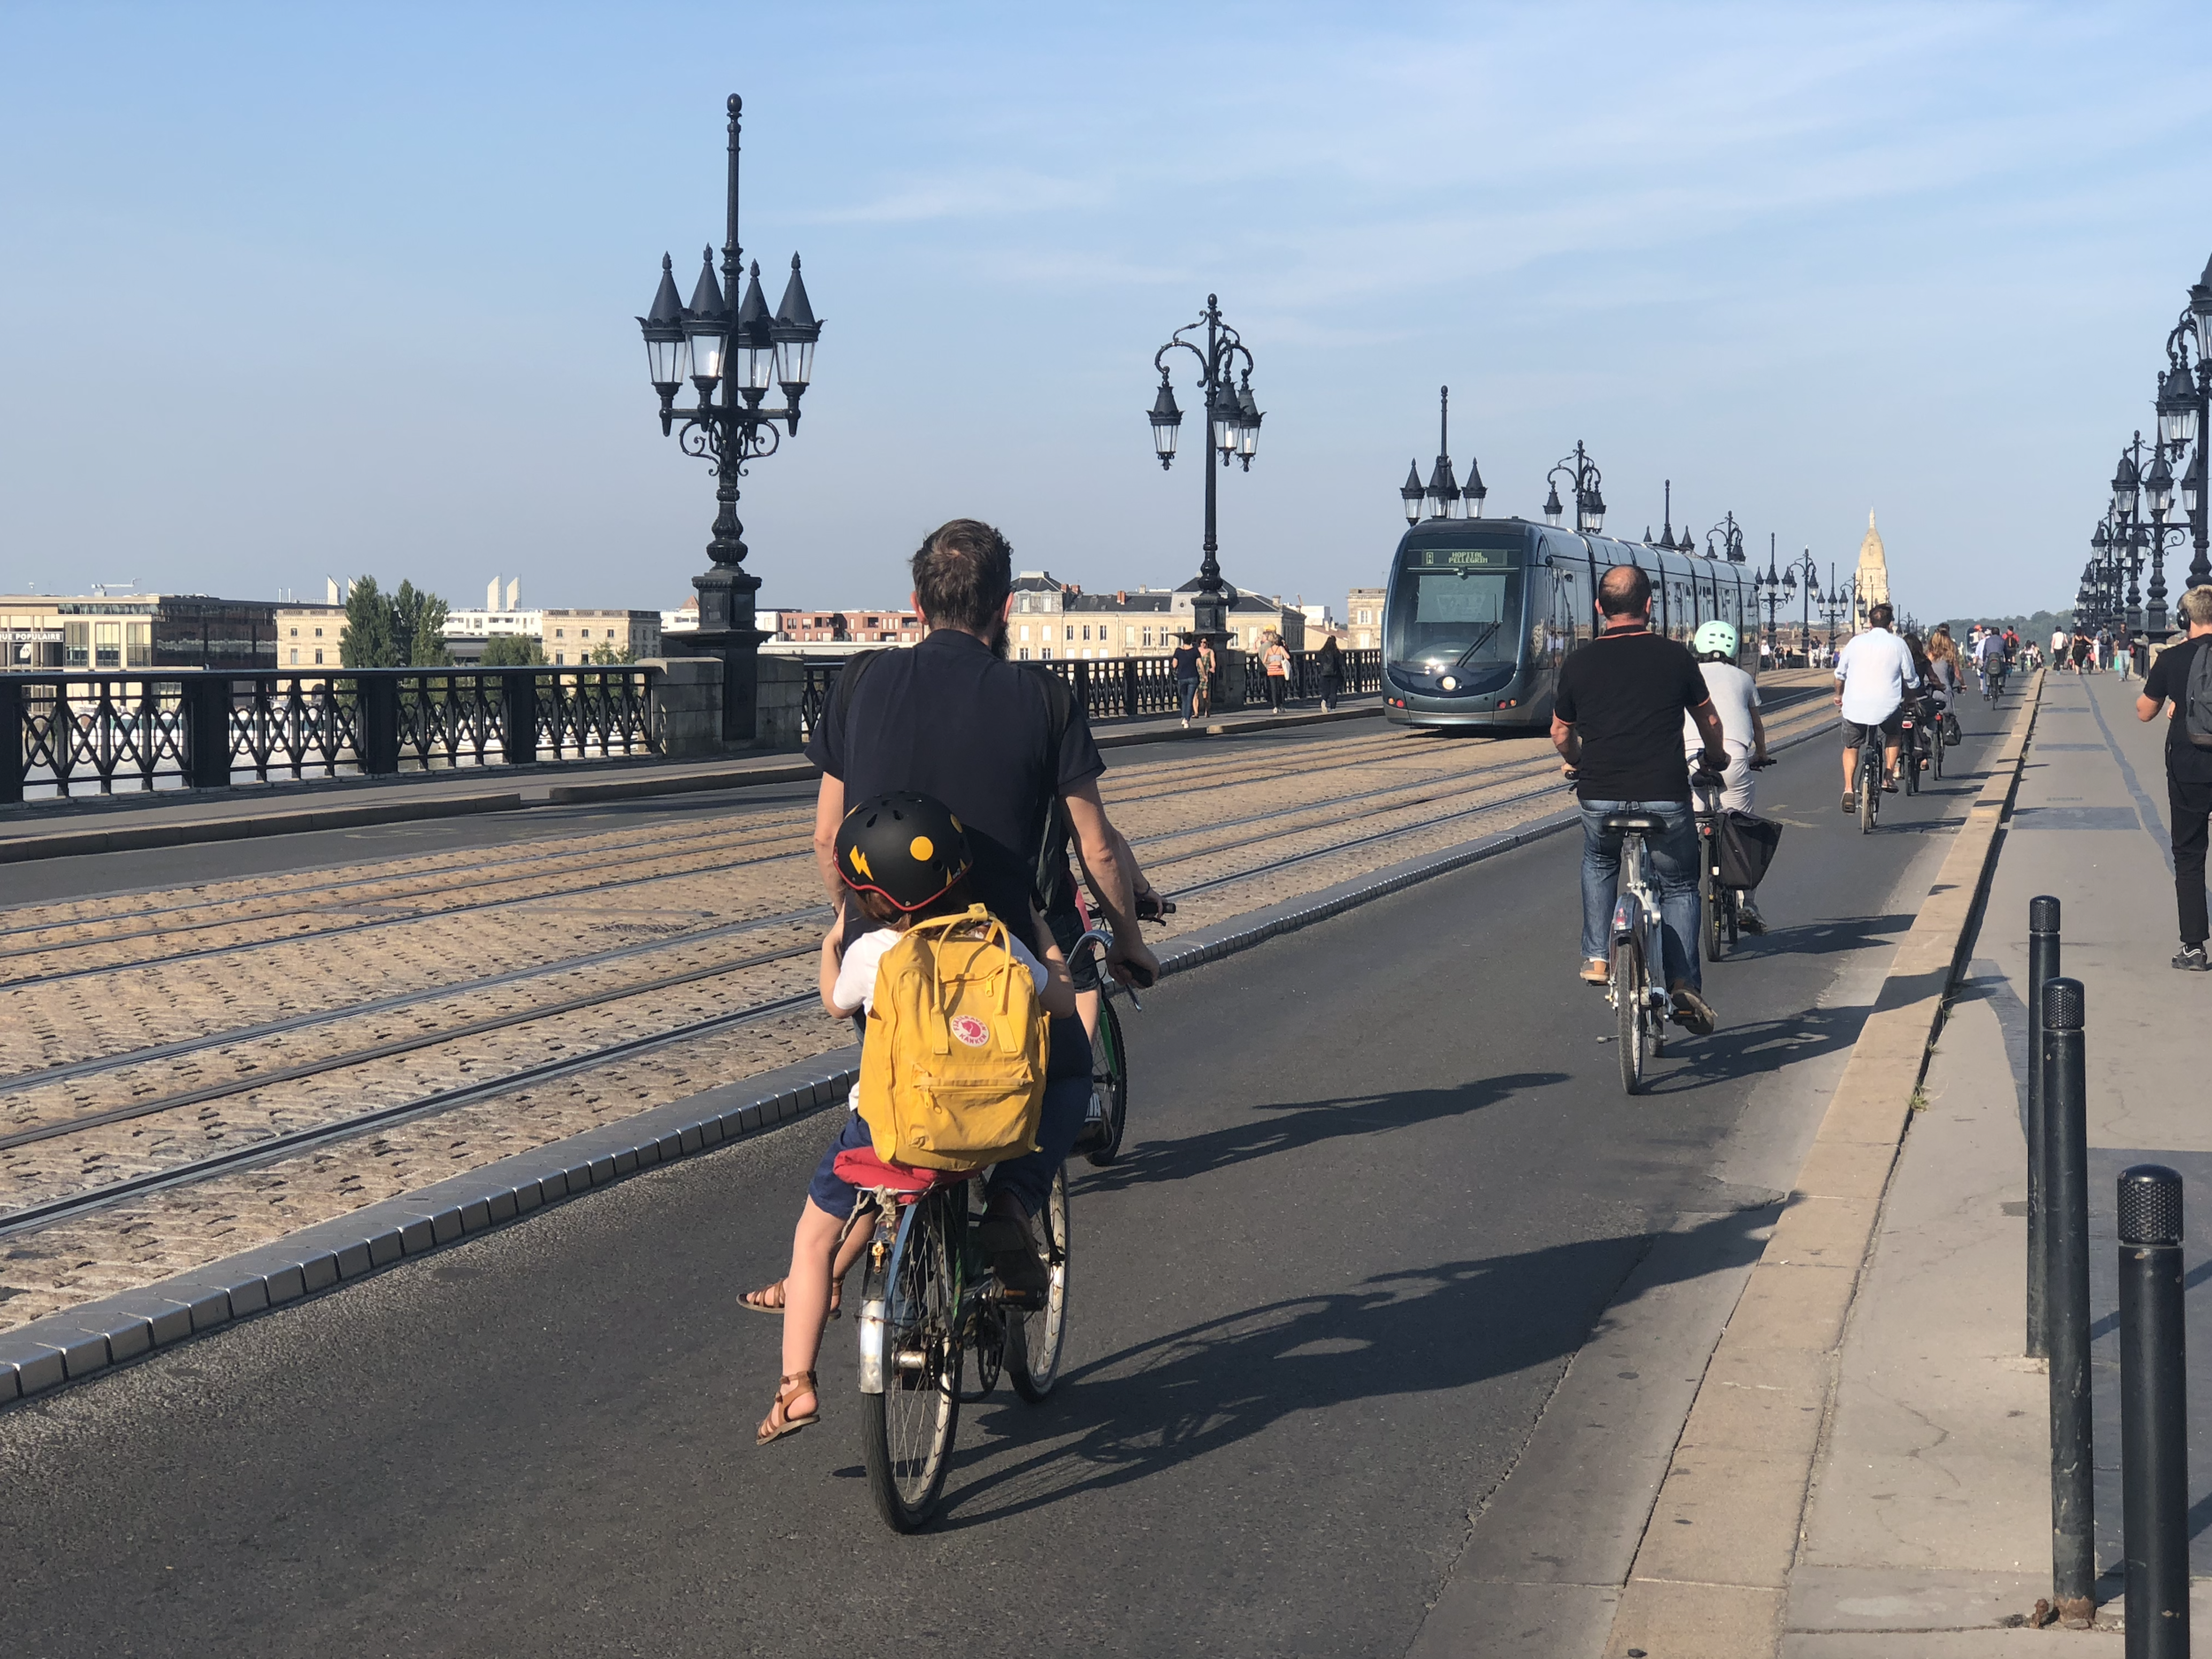 Bordeaux has taken initiative in promoting sustainable forms of mobility, making one of its historical bridges car-free and dedicating it exclusively to cyclists, pedestrians, and public transportation.